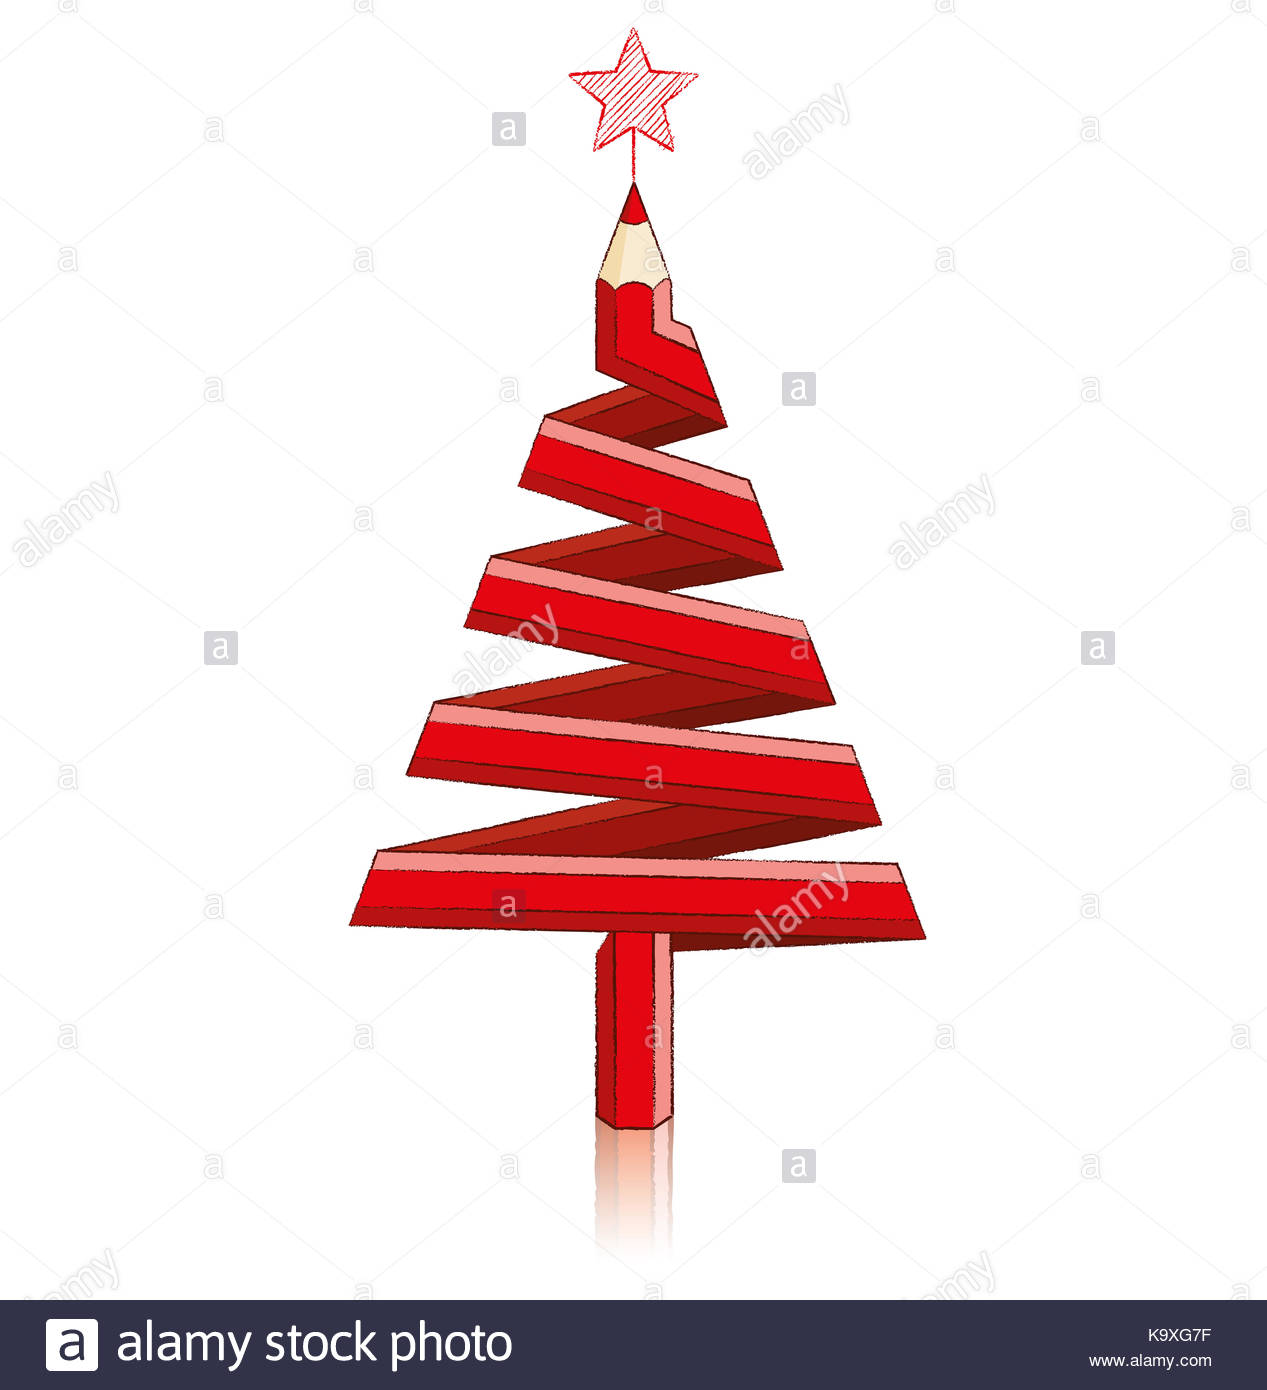 1267x1390 Red Pencil In Shape Of Christmas Tree With Reflection Drawing Star